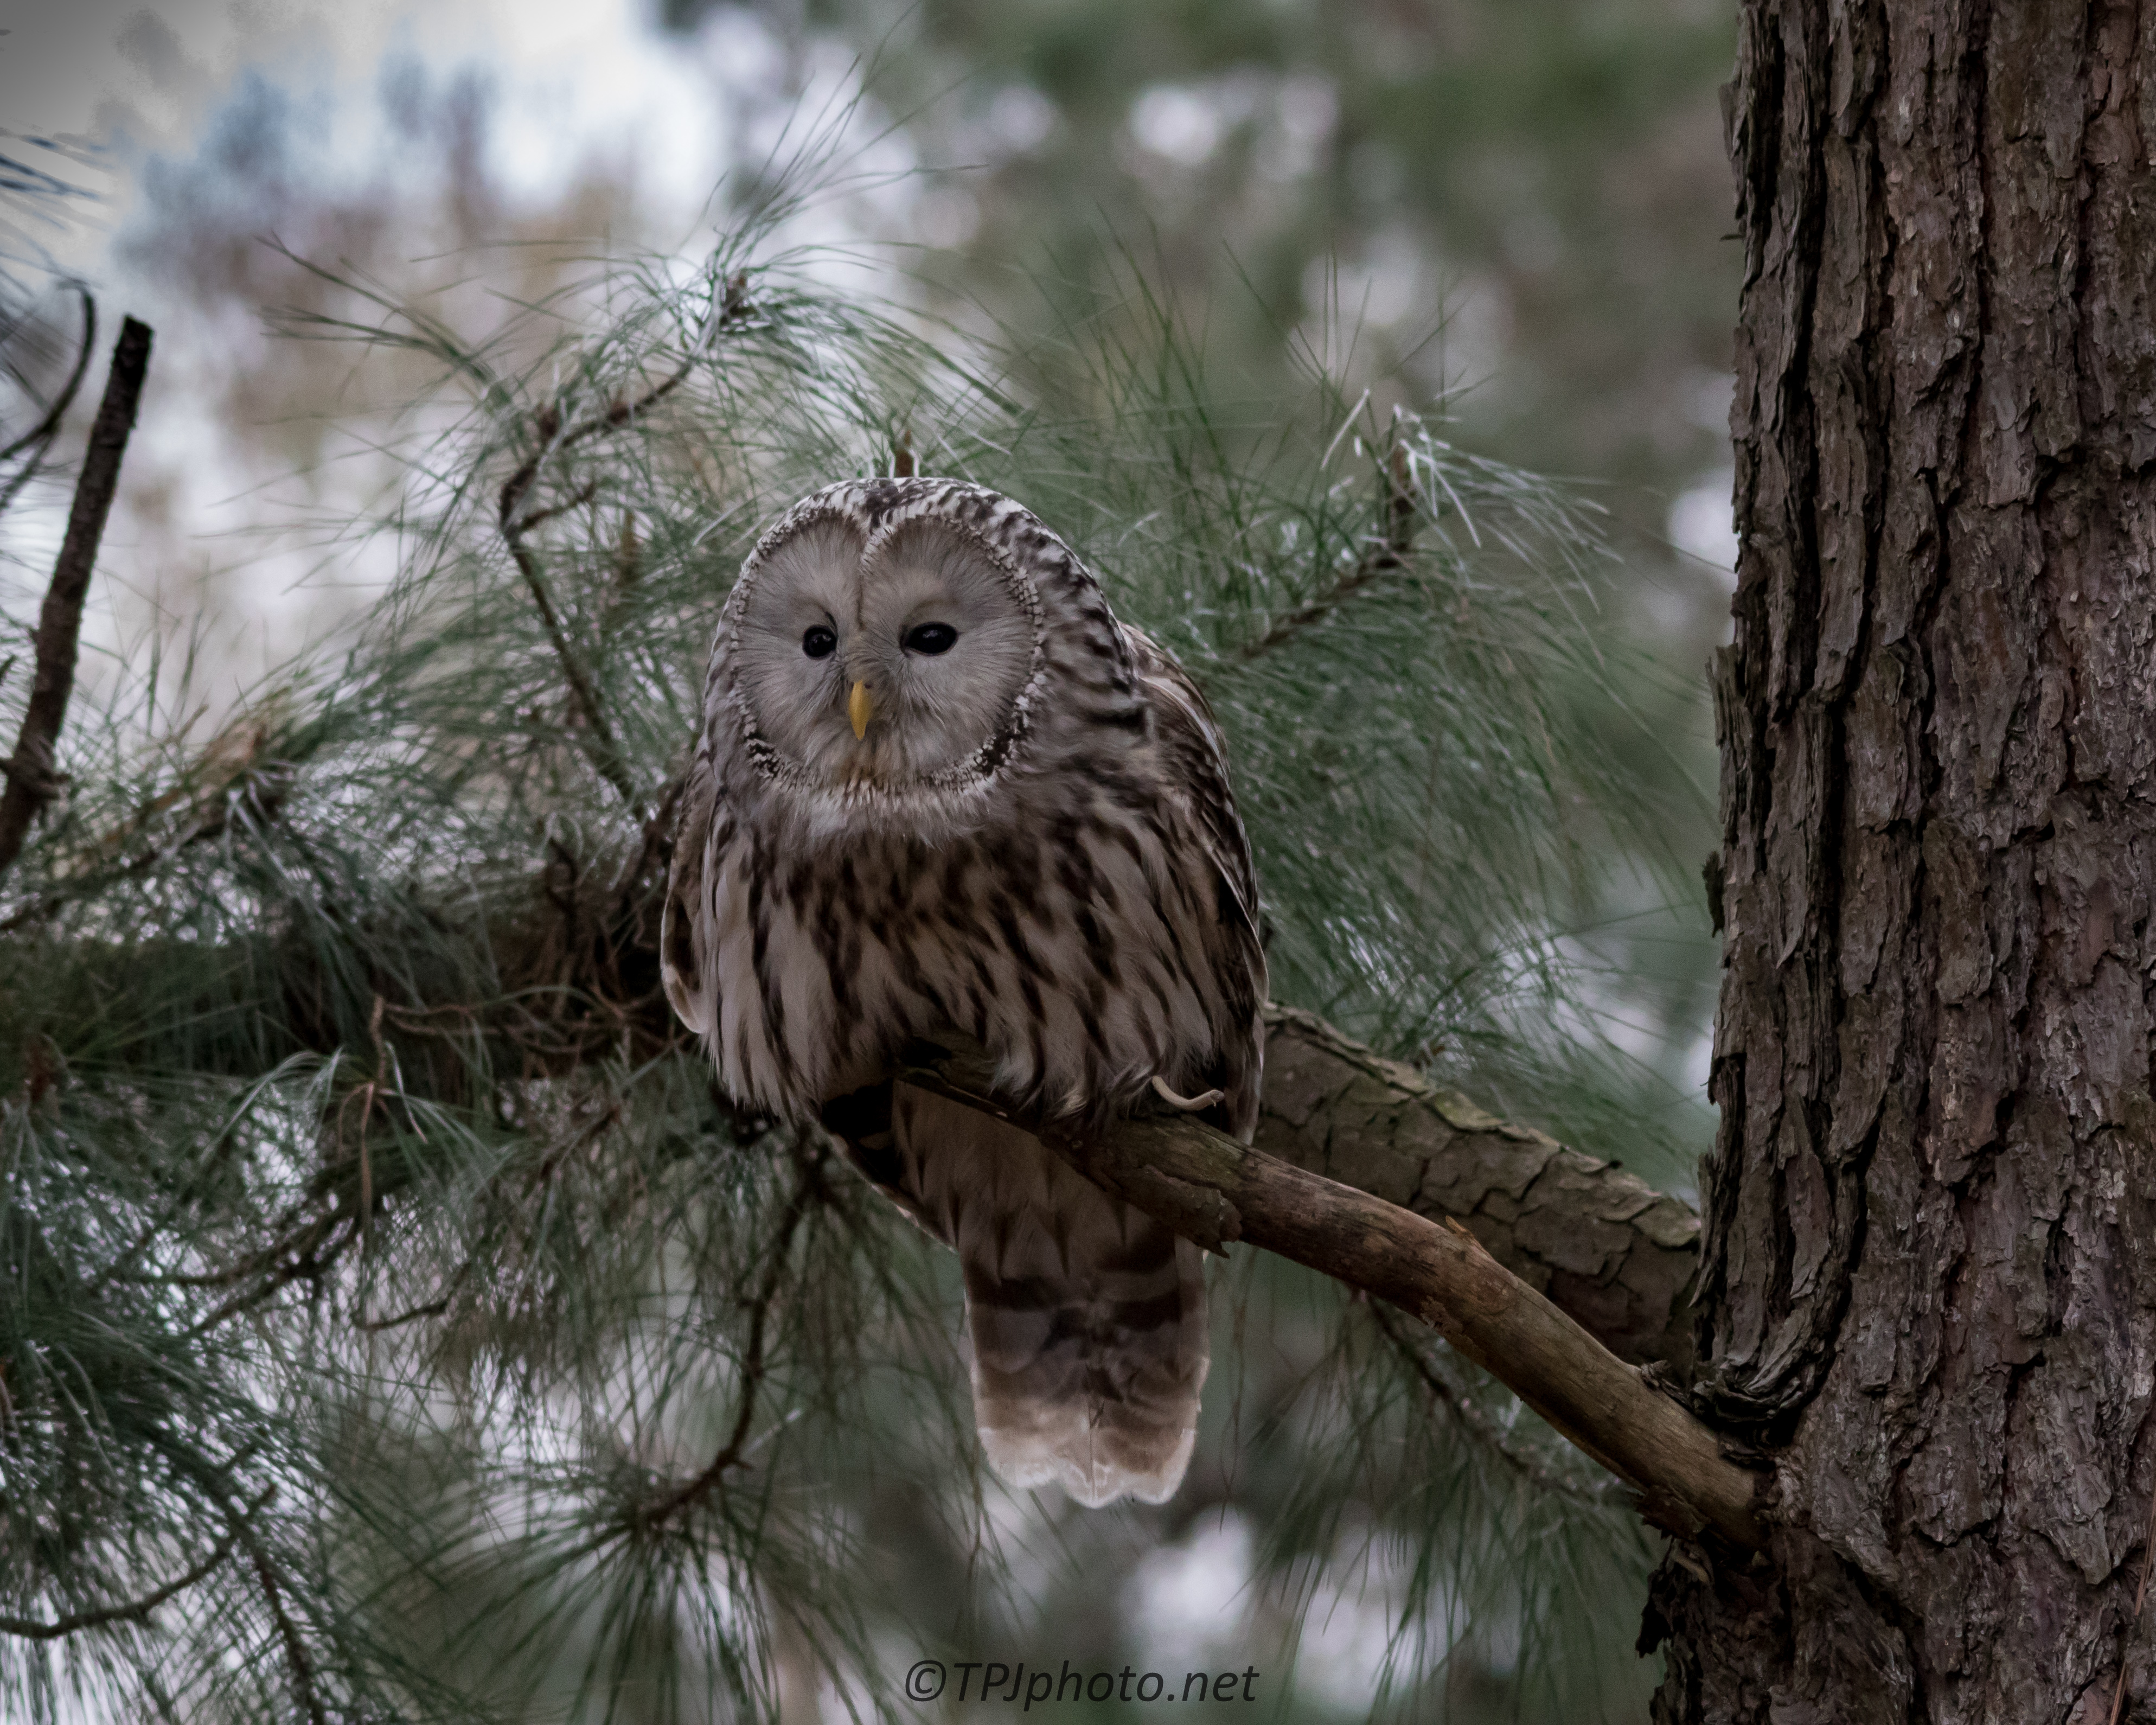 Discussion on this topic: How to Photograph Owls, how-to-photograph-owls/